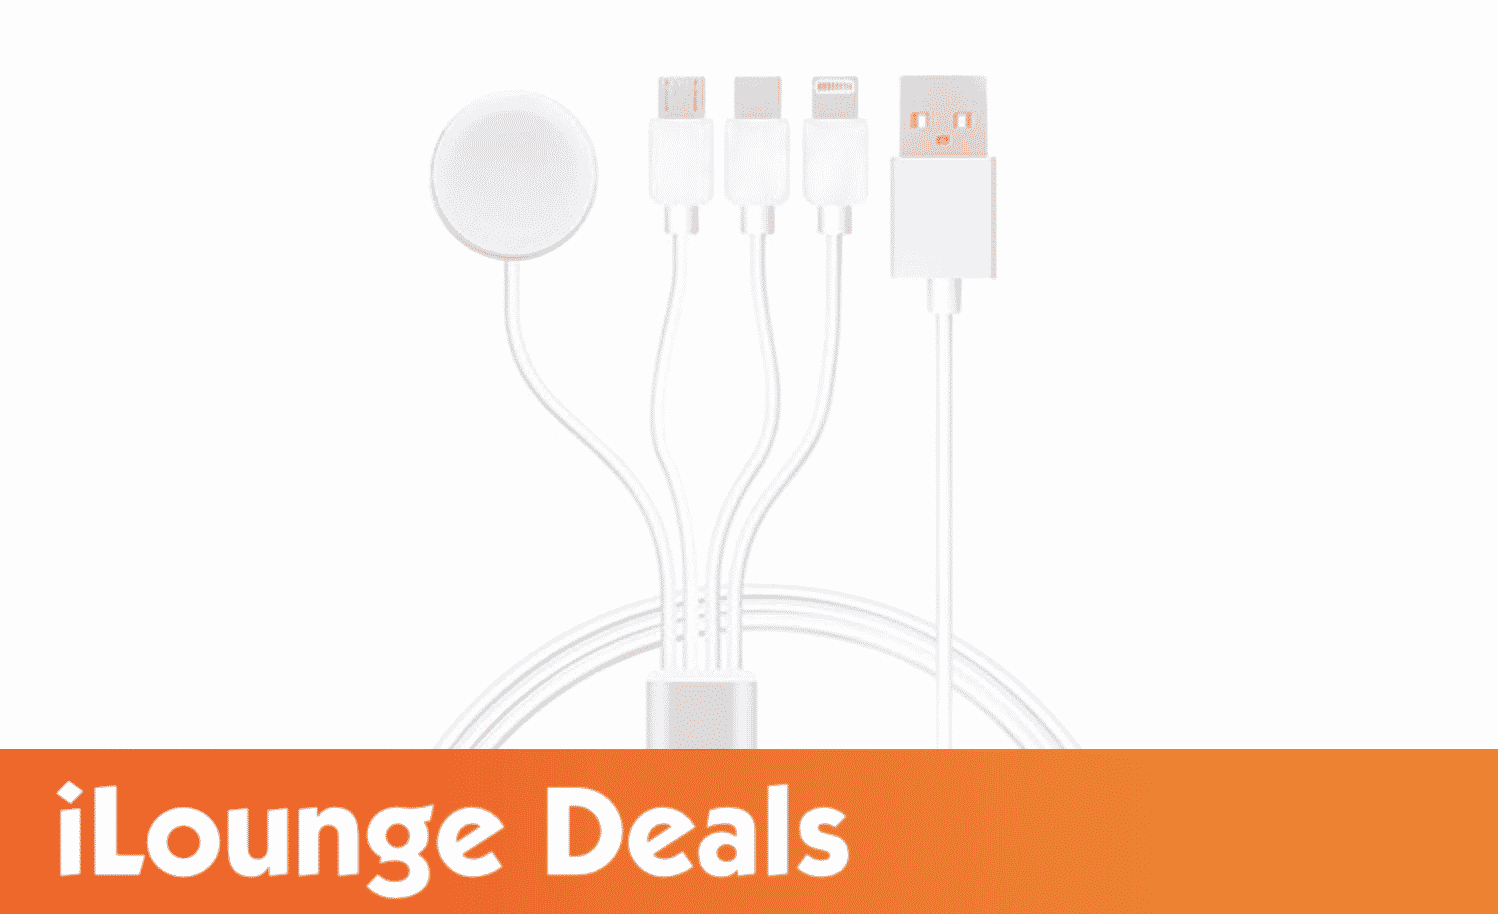 4-in-1 Multi Port & Apple Watch Charger is 48% off